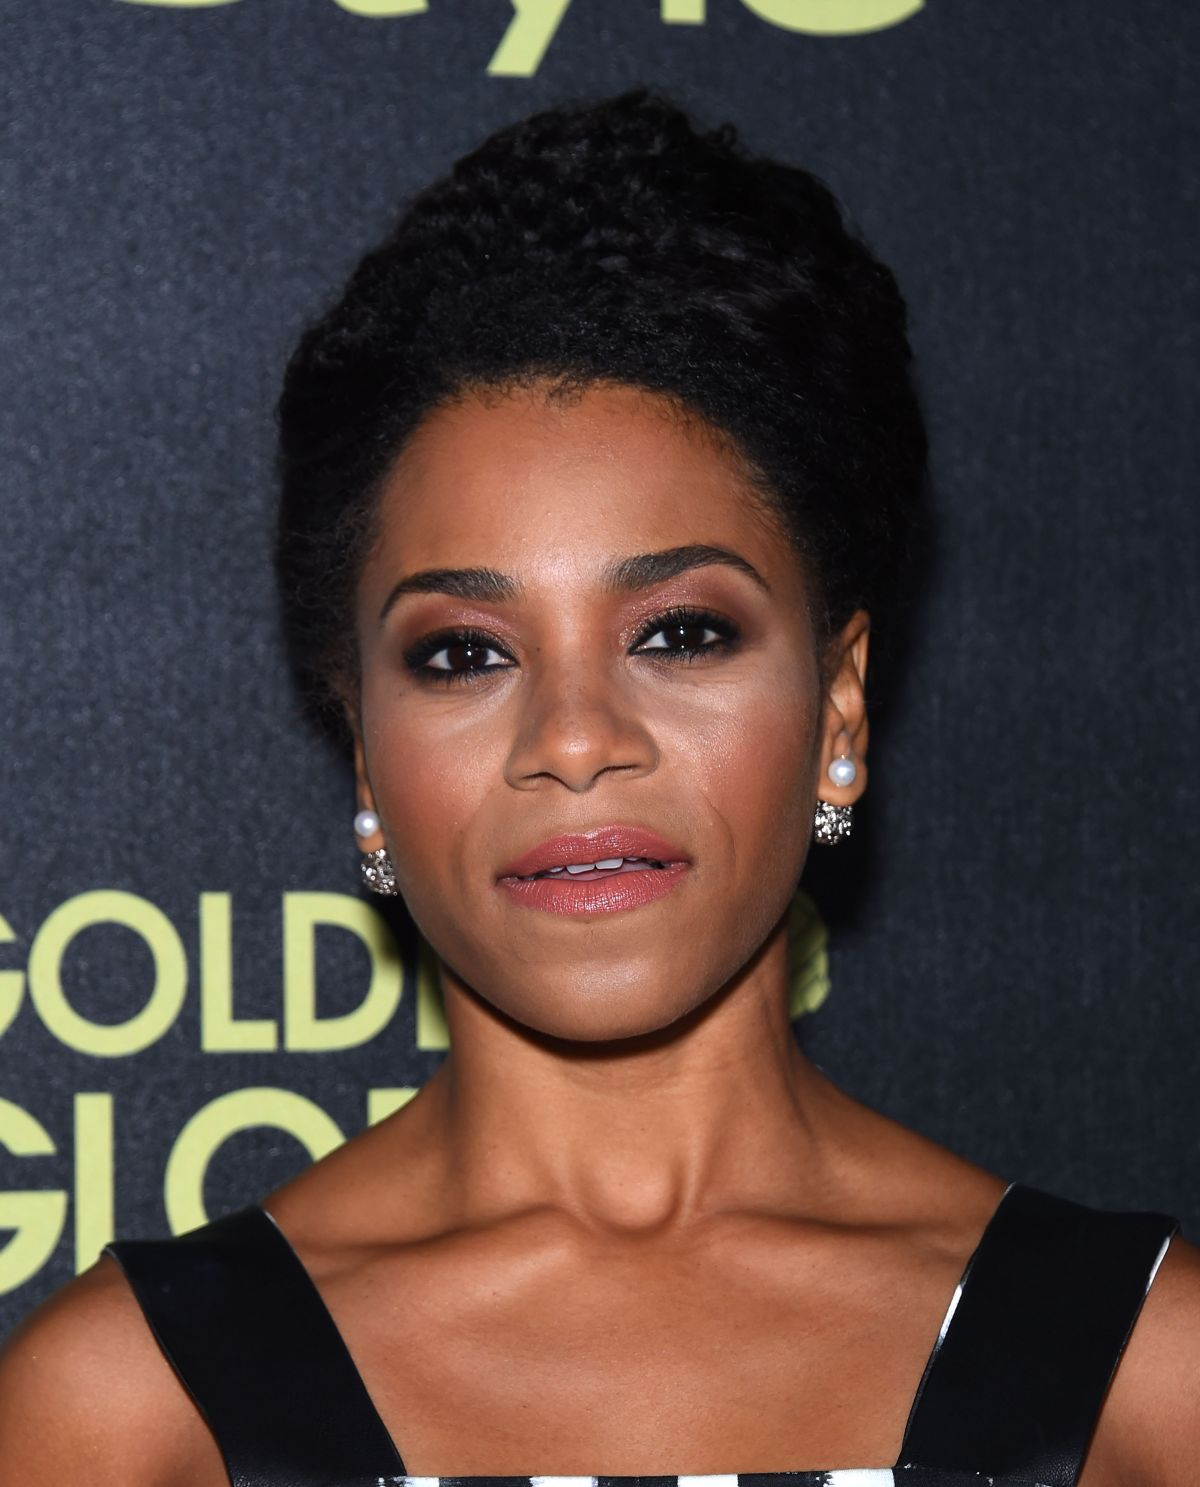 kelly mccreary twitterkelly mccreary imdb, kelly mccreary age, kelly mccreary net worth, kelly mccreary and aasha davis, kelly mccreary weeds, kelly mccreary spouse, kelly mccreary bio, kelly mccreary twitter, kelly mccreary cyberchase, kelly mccreary movies and tv shows, kelly mccreary grey's anatomy, kelly mccreary natural hair, kelly mccreary tv shows, kelly mccreary on friday night lights, kelly mccreary interview, kelly mccreary criminal minds, kelly mccreary commercial, kelly mccreary instagram, kelly mccreary grey's, kelly mccreary height